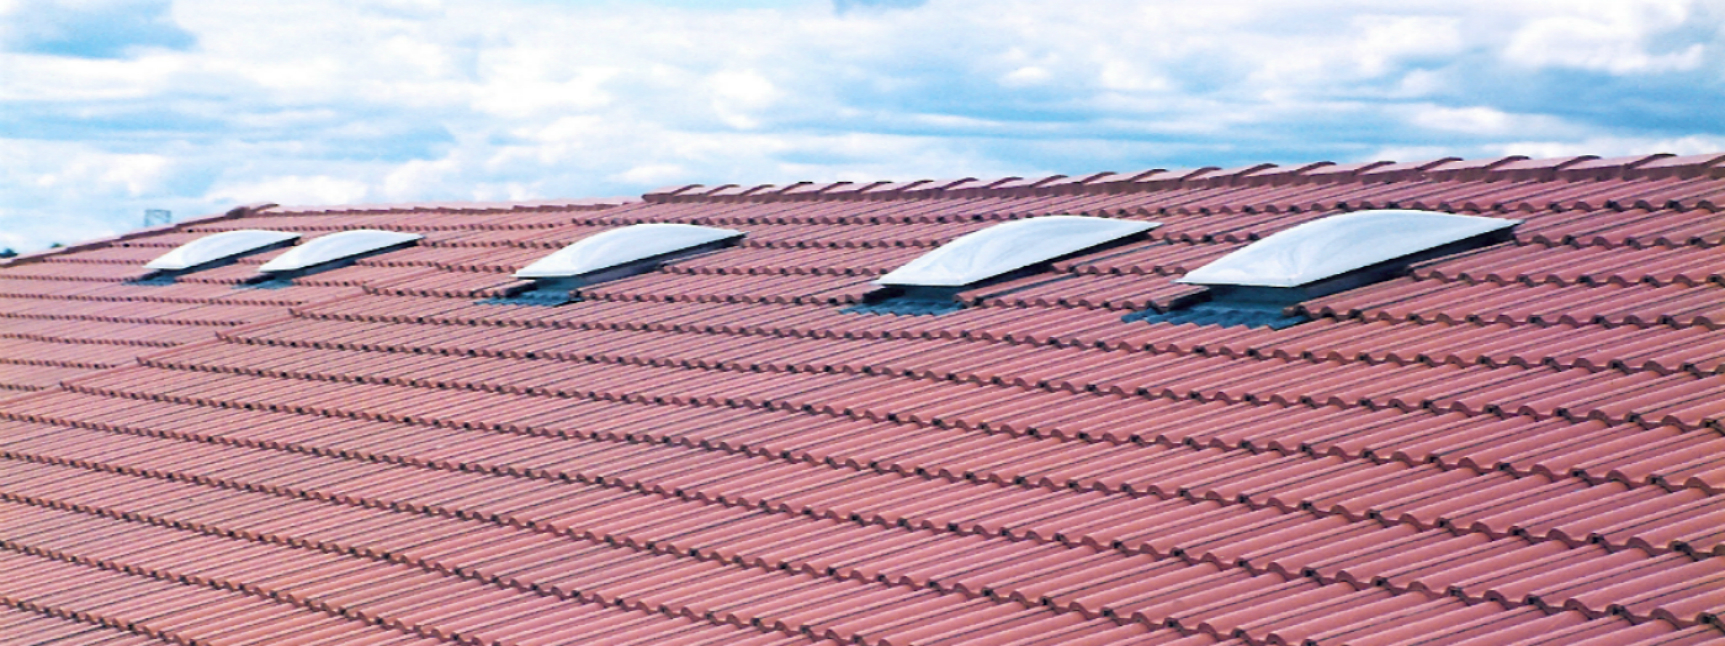 10 Benefits of Opening & Ventilated Skylights